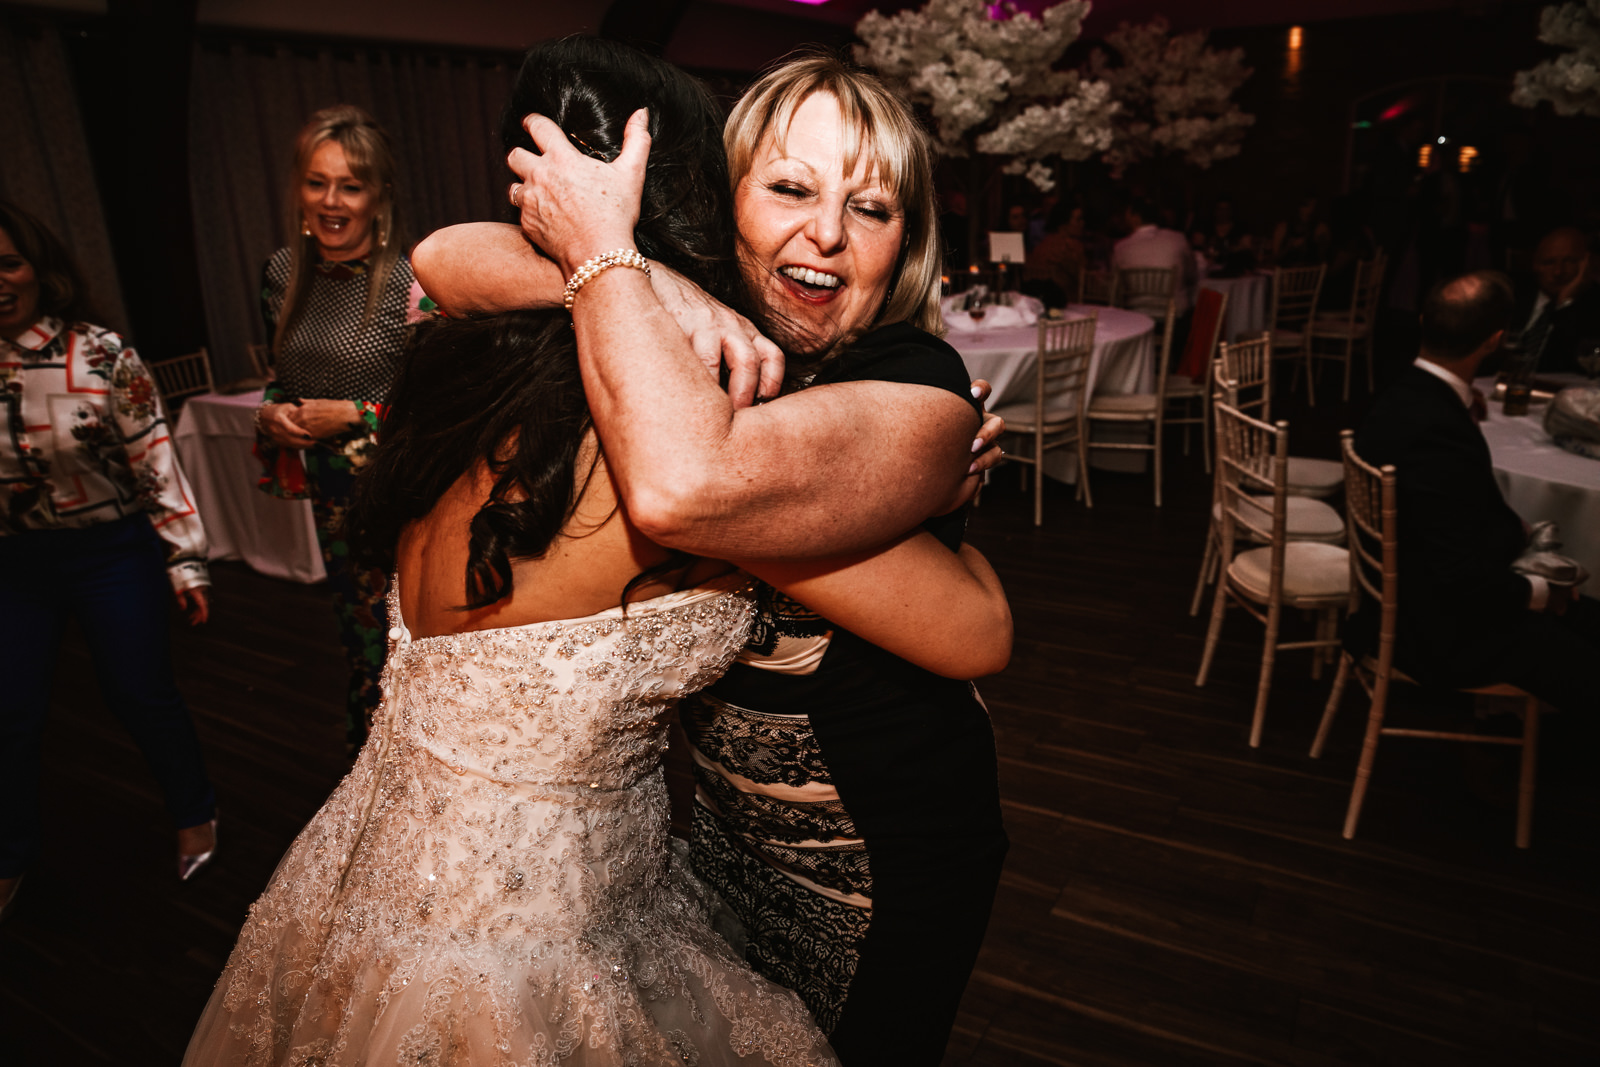 Hugs on the dance floor